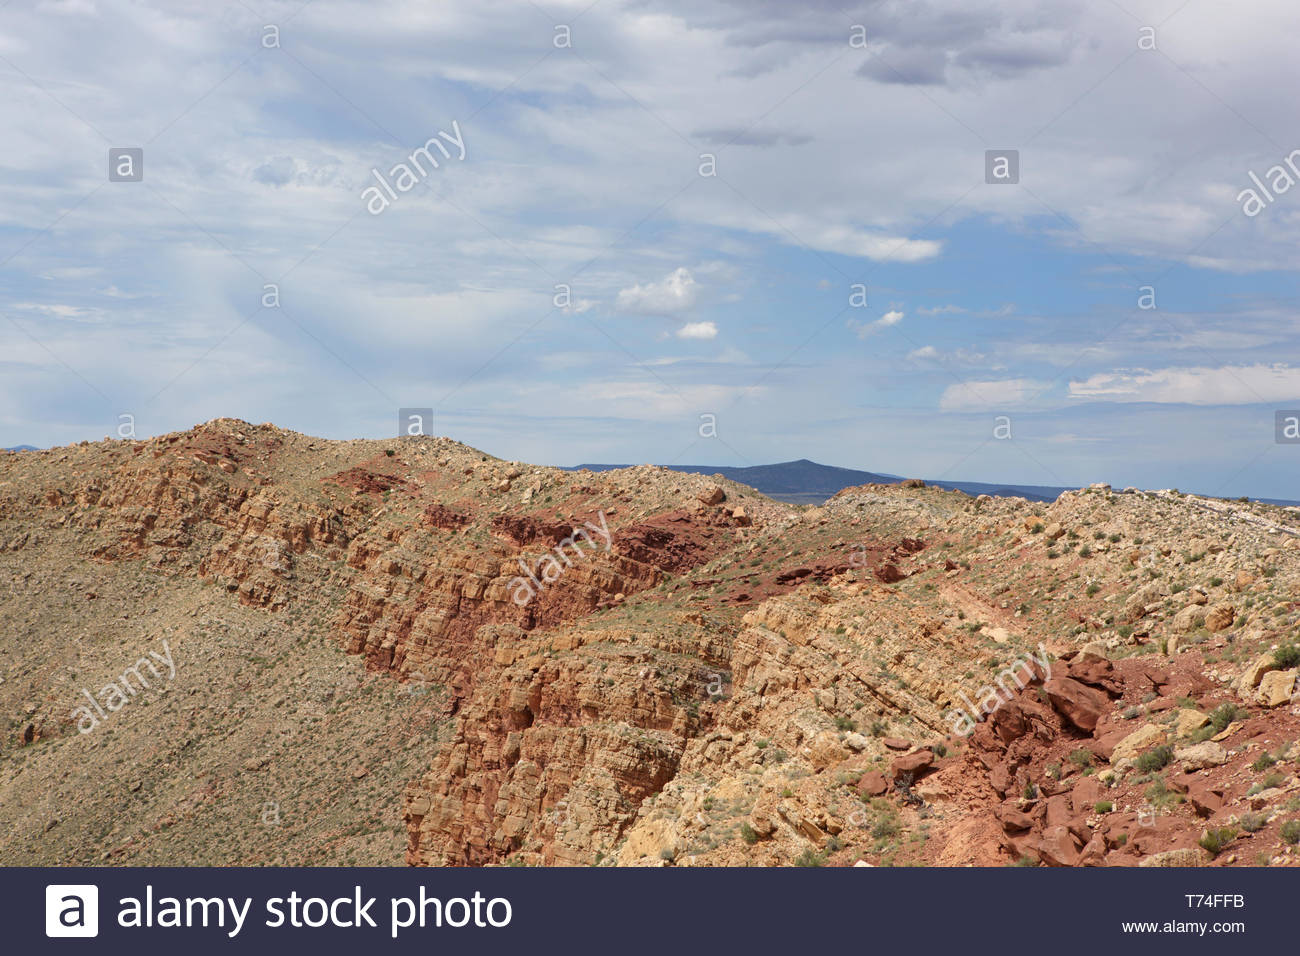 Detail of Meteor Crater rim near Winslow on the Colorado Plateau of Northern Arizona - detail of overturned rock strata - Stock Image